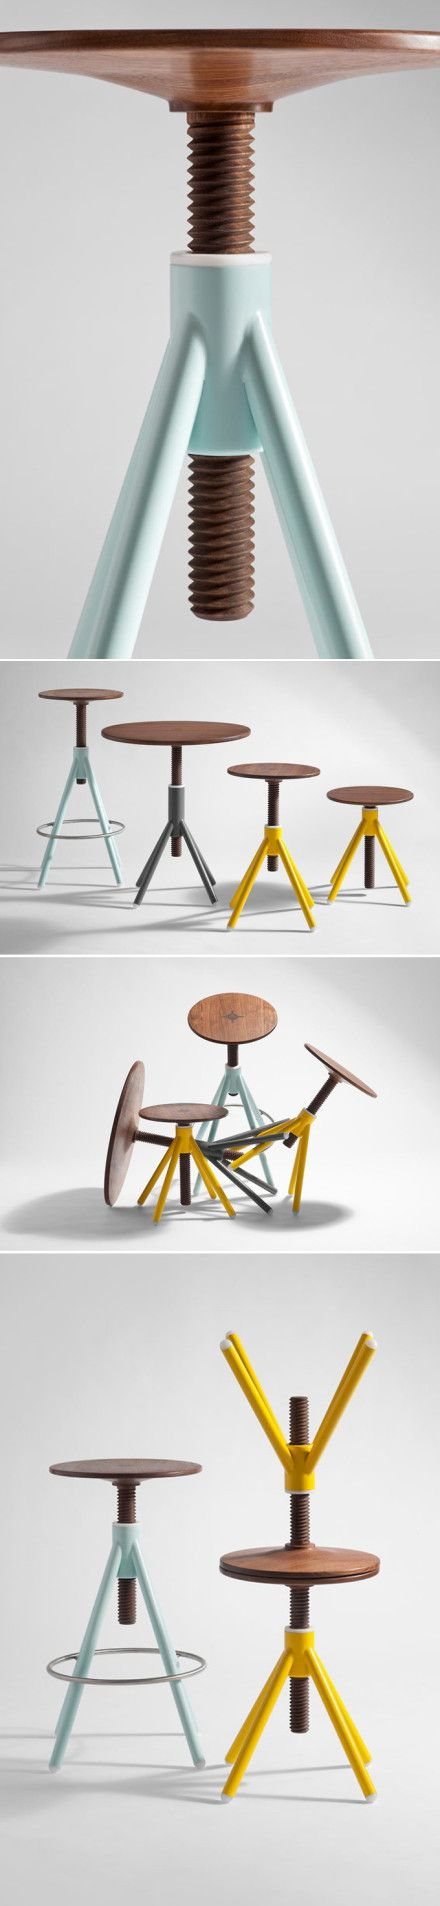 Stool-perhaps for the computer desk-could double as a side table. Love the wood and robin's egg blue.